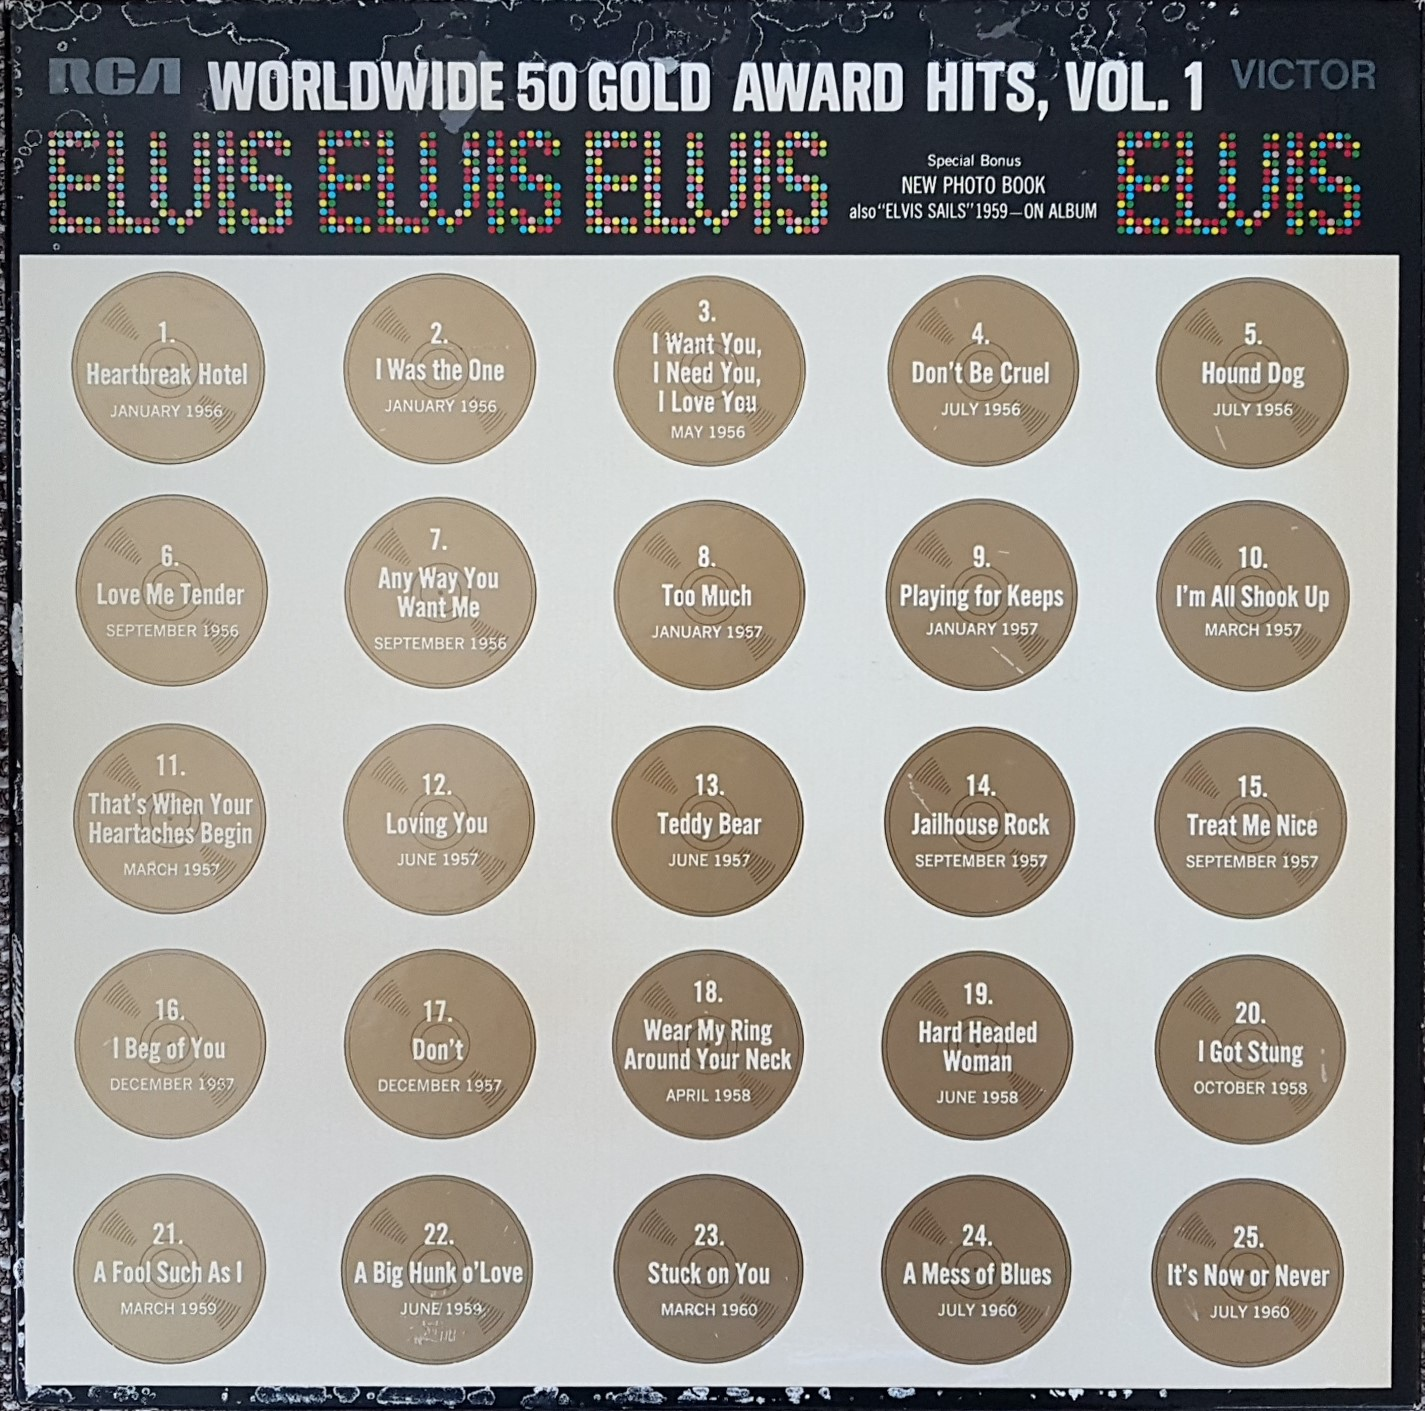 WORLDWIDE 50 GOLD AWARD HITS, VOL.1 20190717_1634342pxkrp